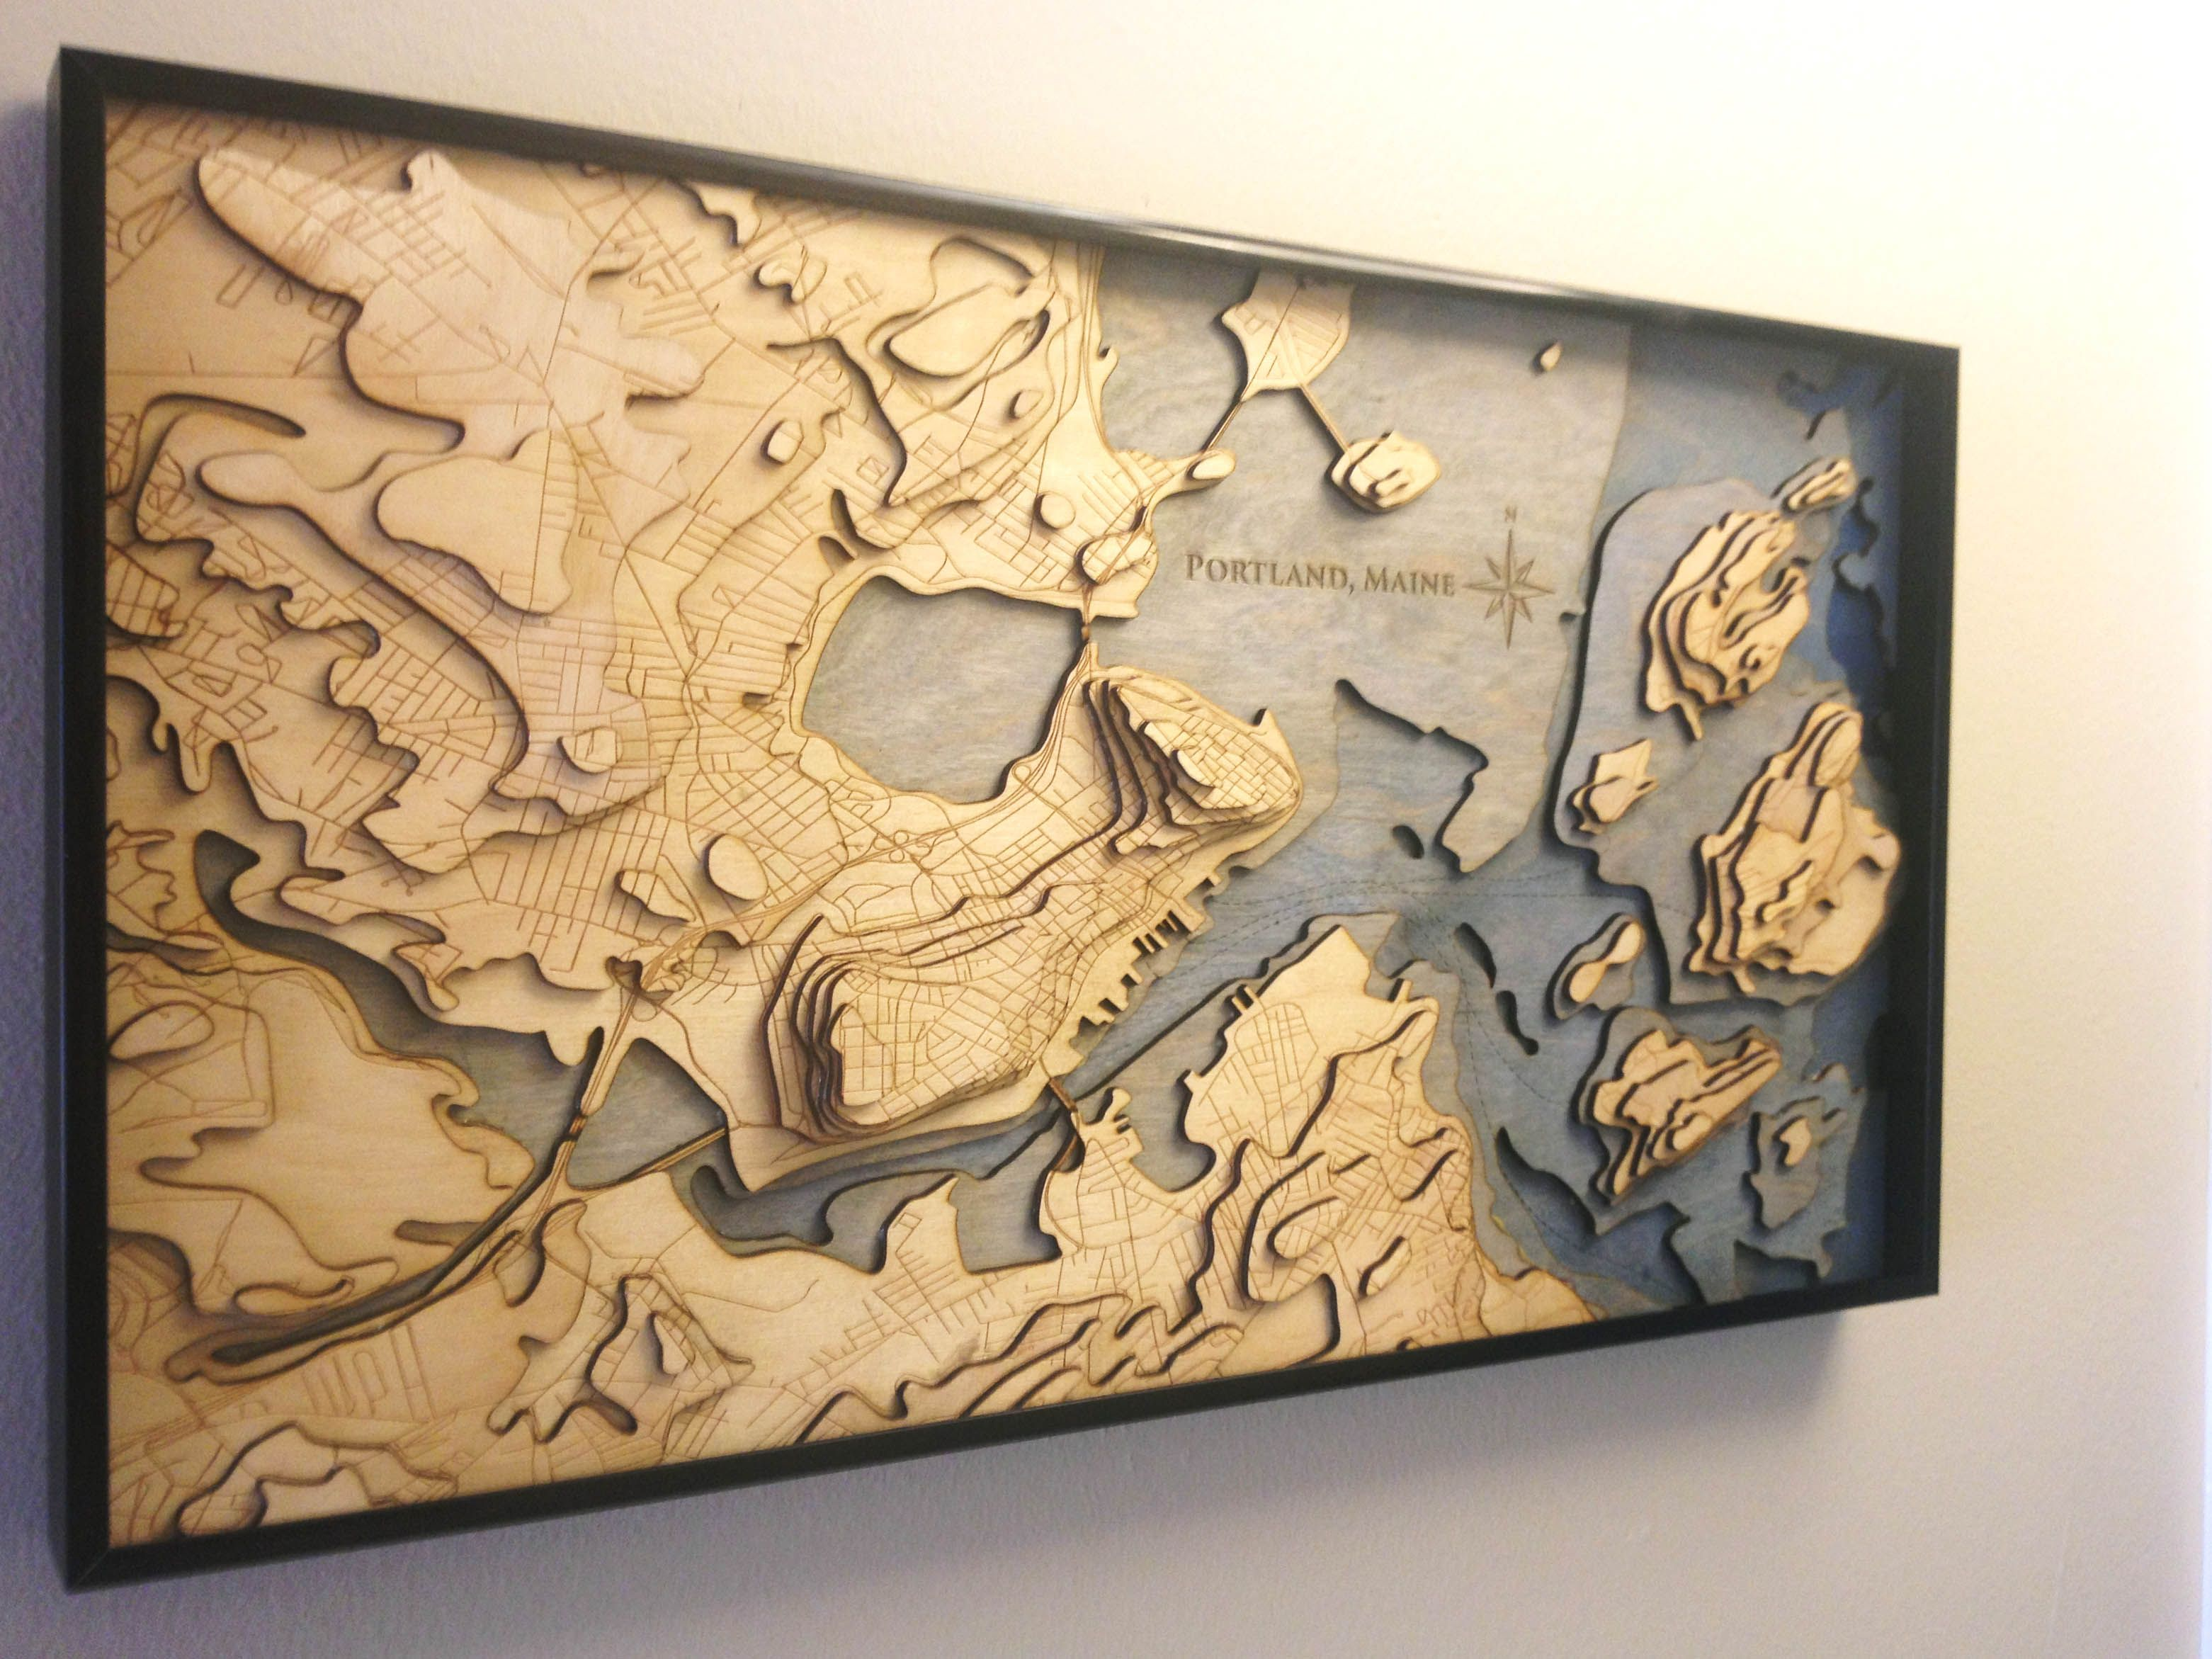 Making a laser cut topo map of Portland